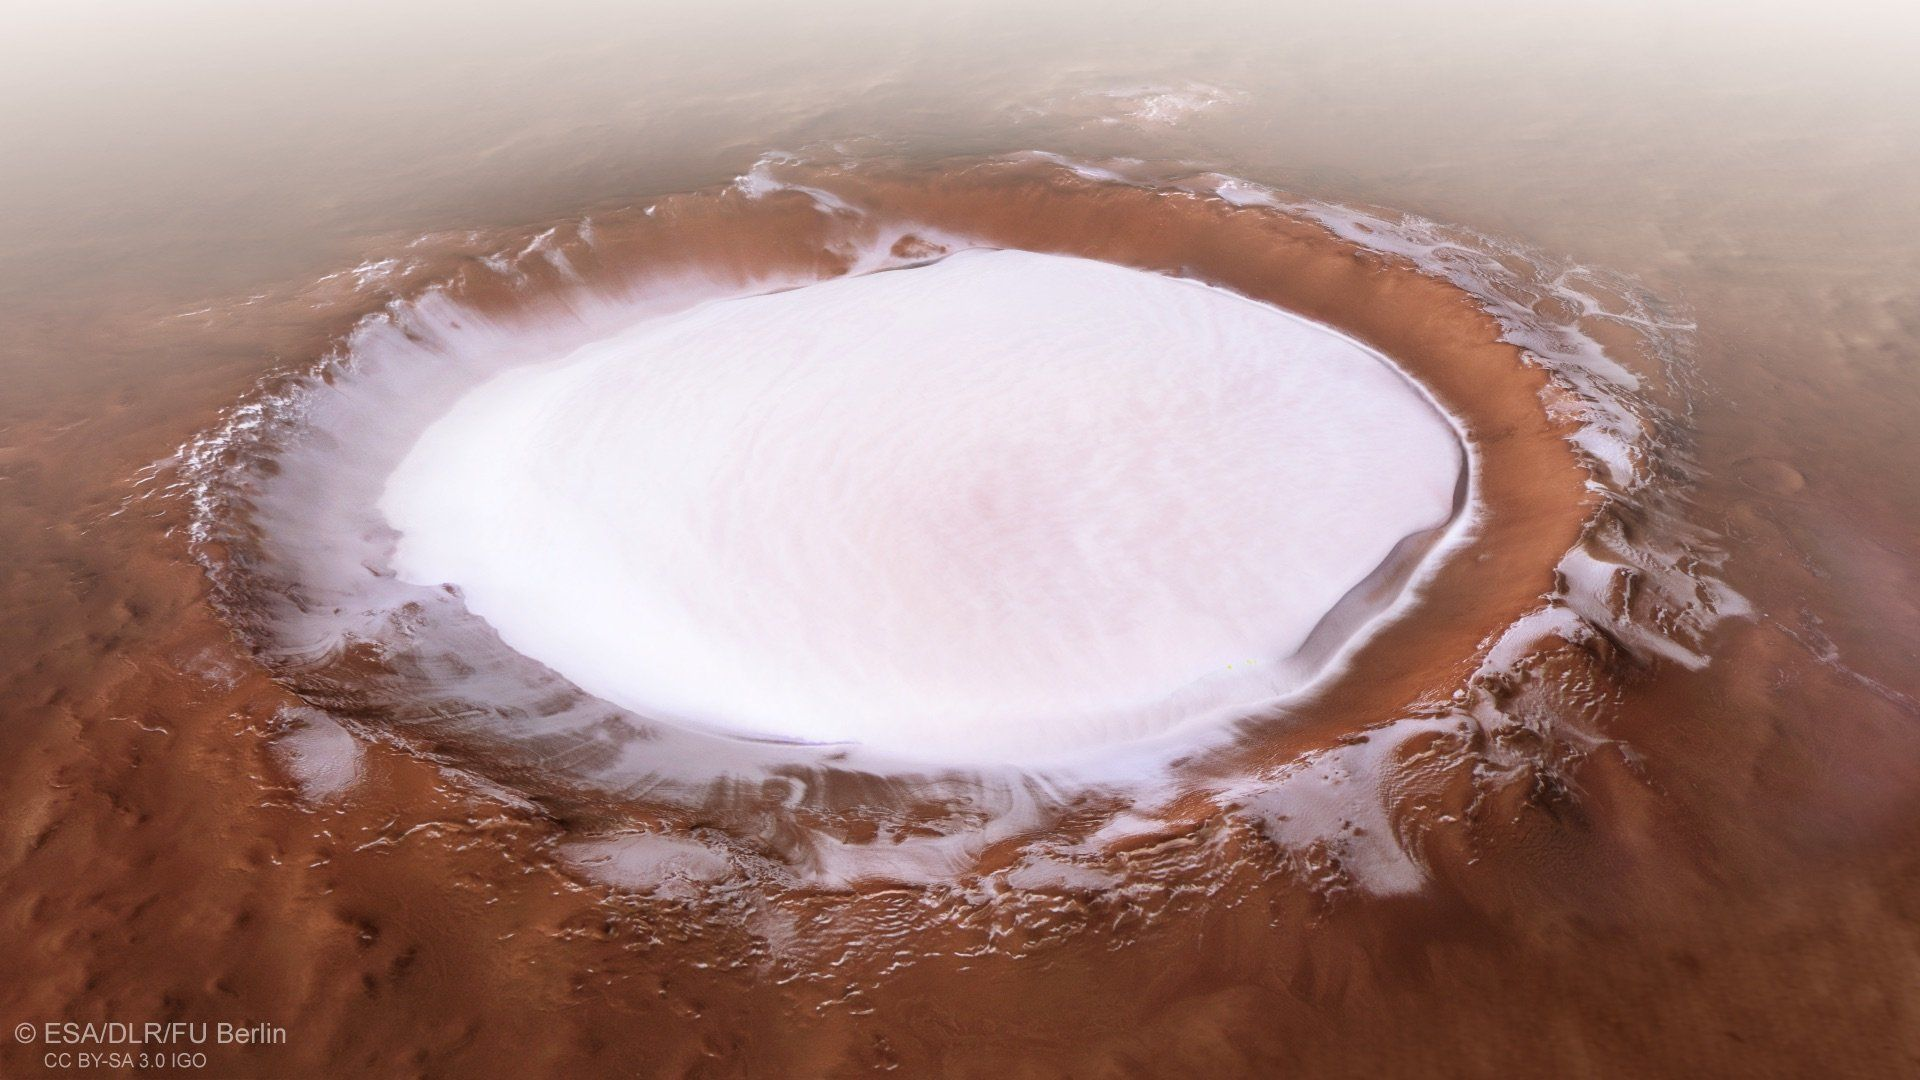 Mars orbiter sends striking photos from icy crater